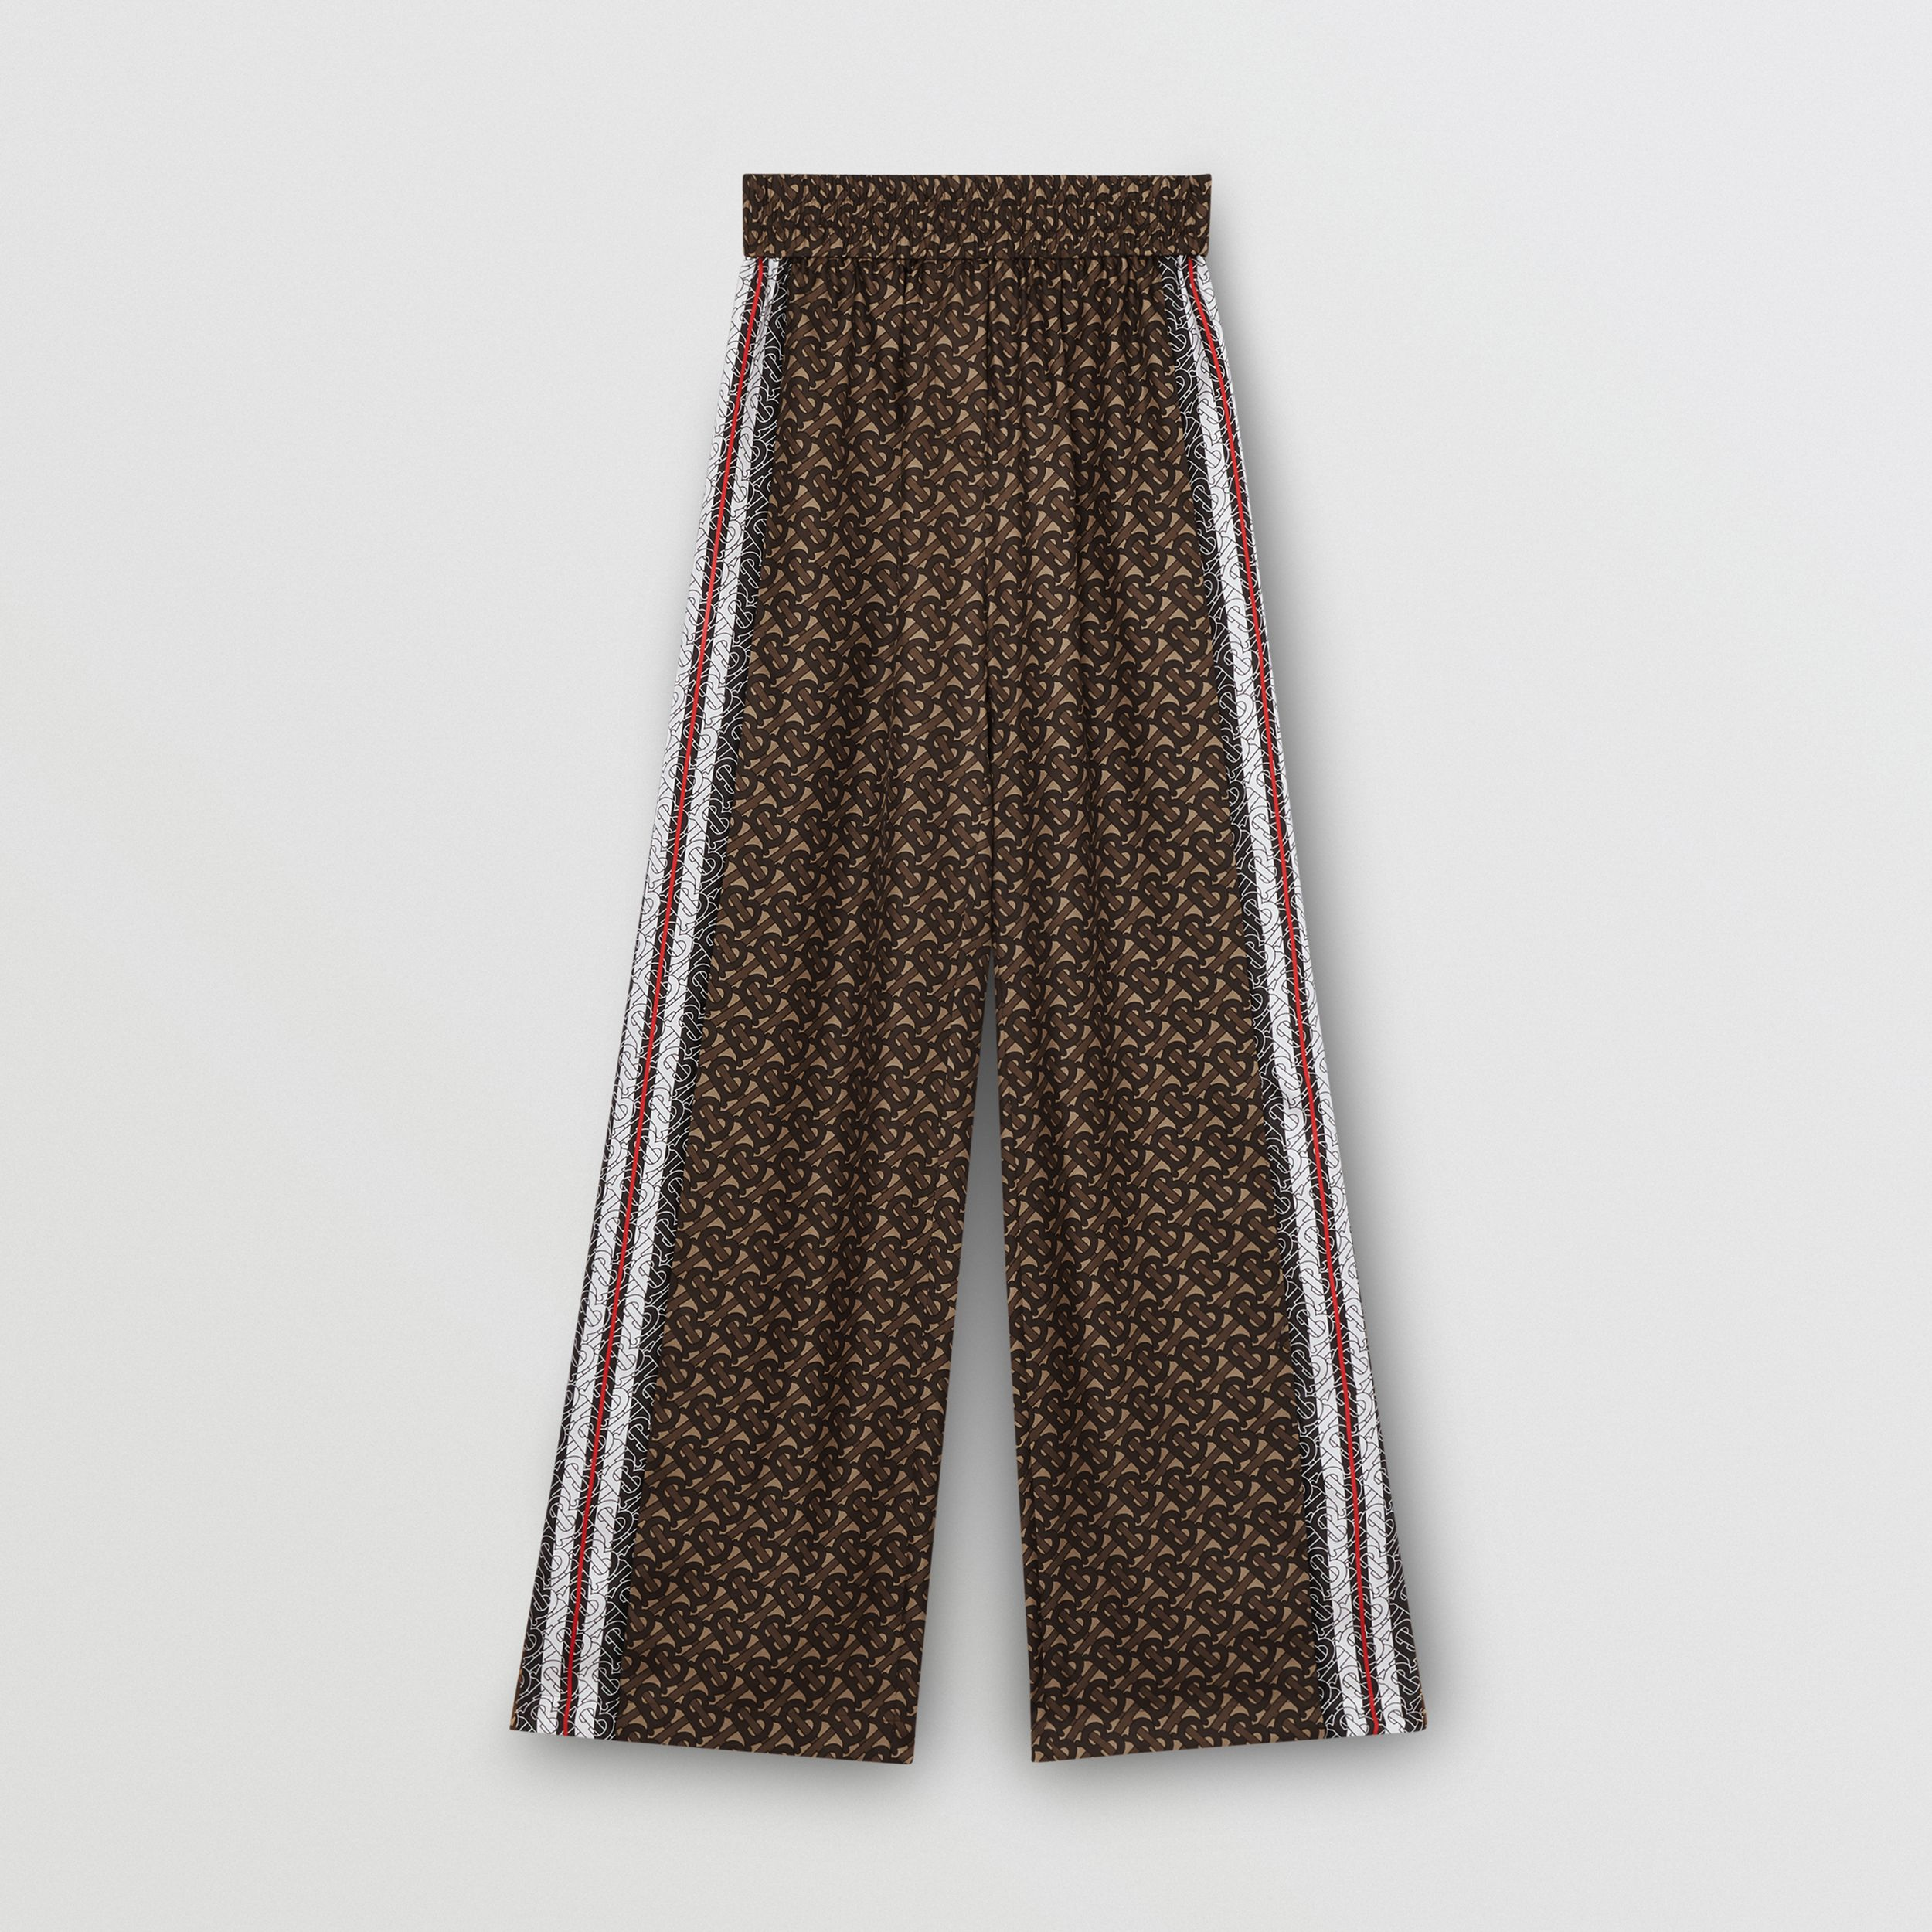 Monogram Stripe Print Silk Wide-leg Trousers in Bridle Brown - Women | Burberry - 4